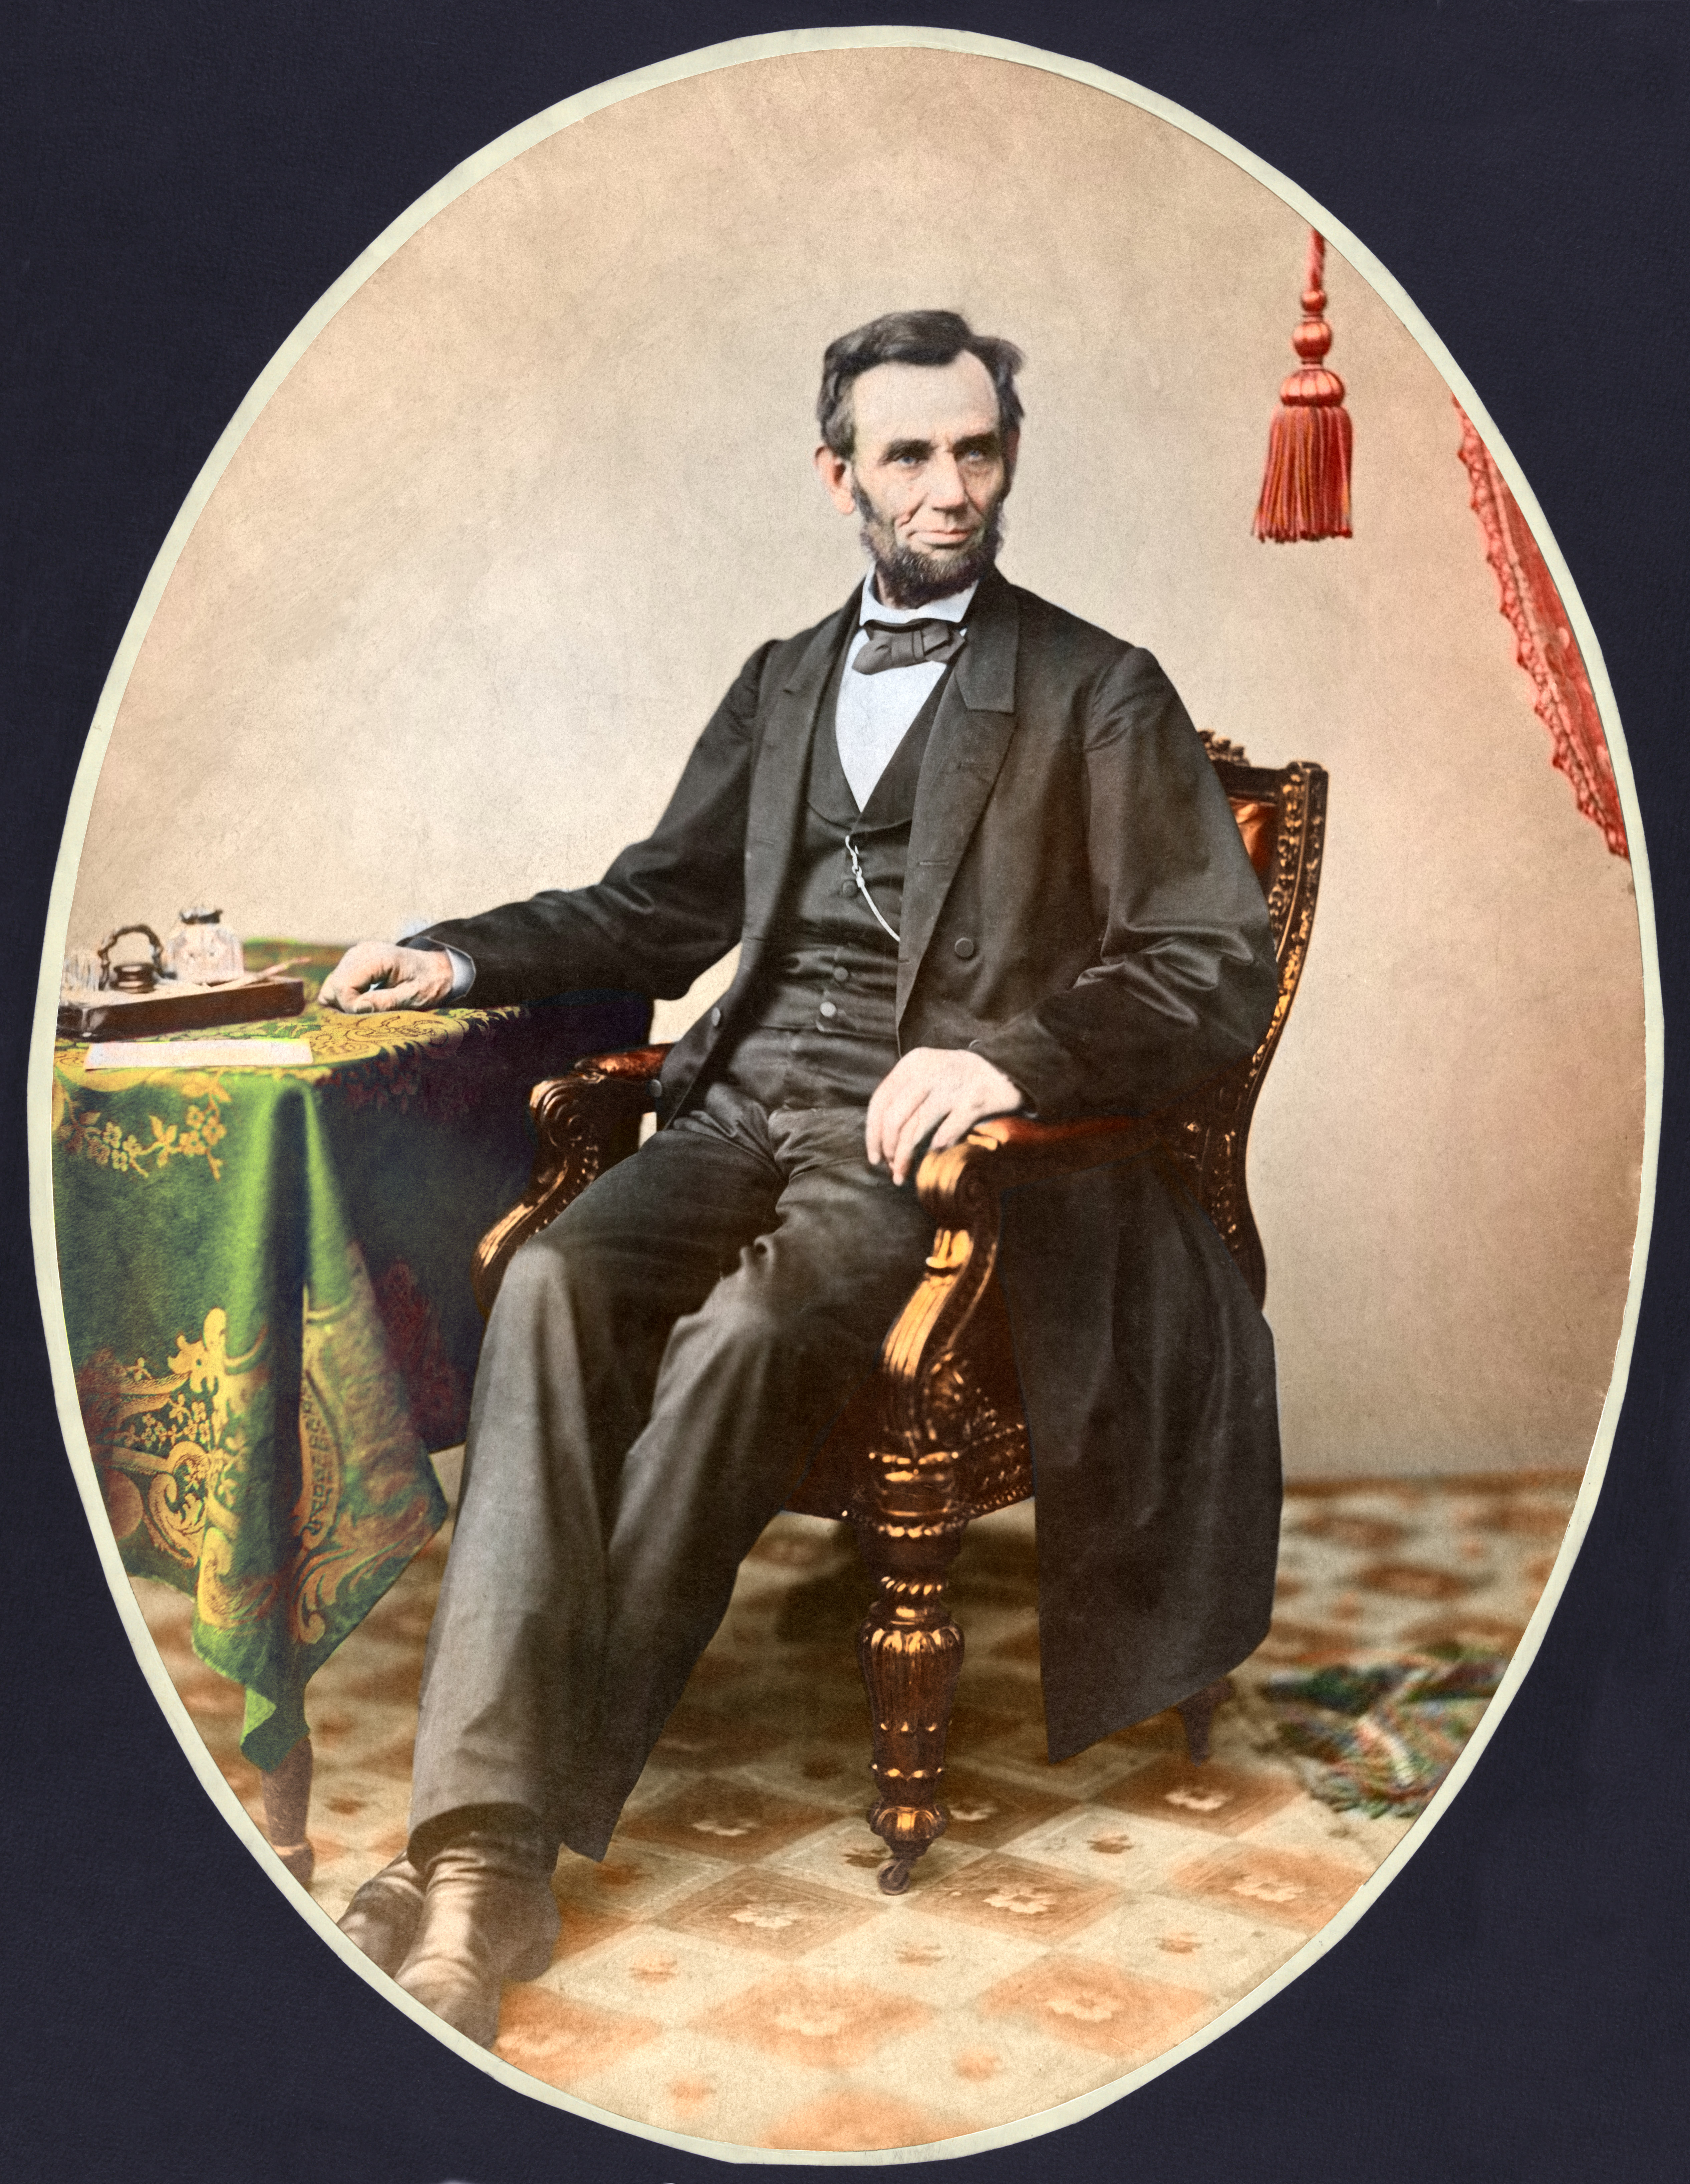 November 8, 1863. Photograph shows President Abraham Lincoln, a little more than a week before he gave the Gettysburg Address.